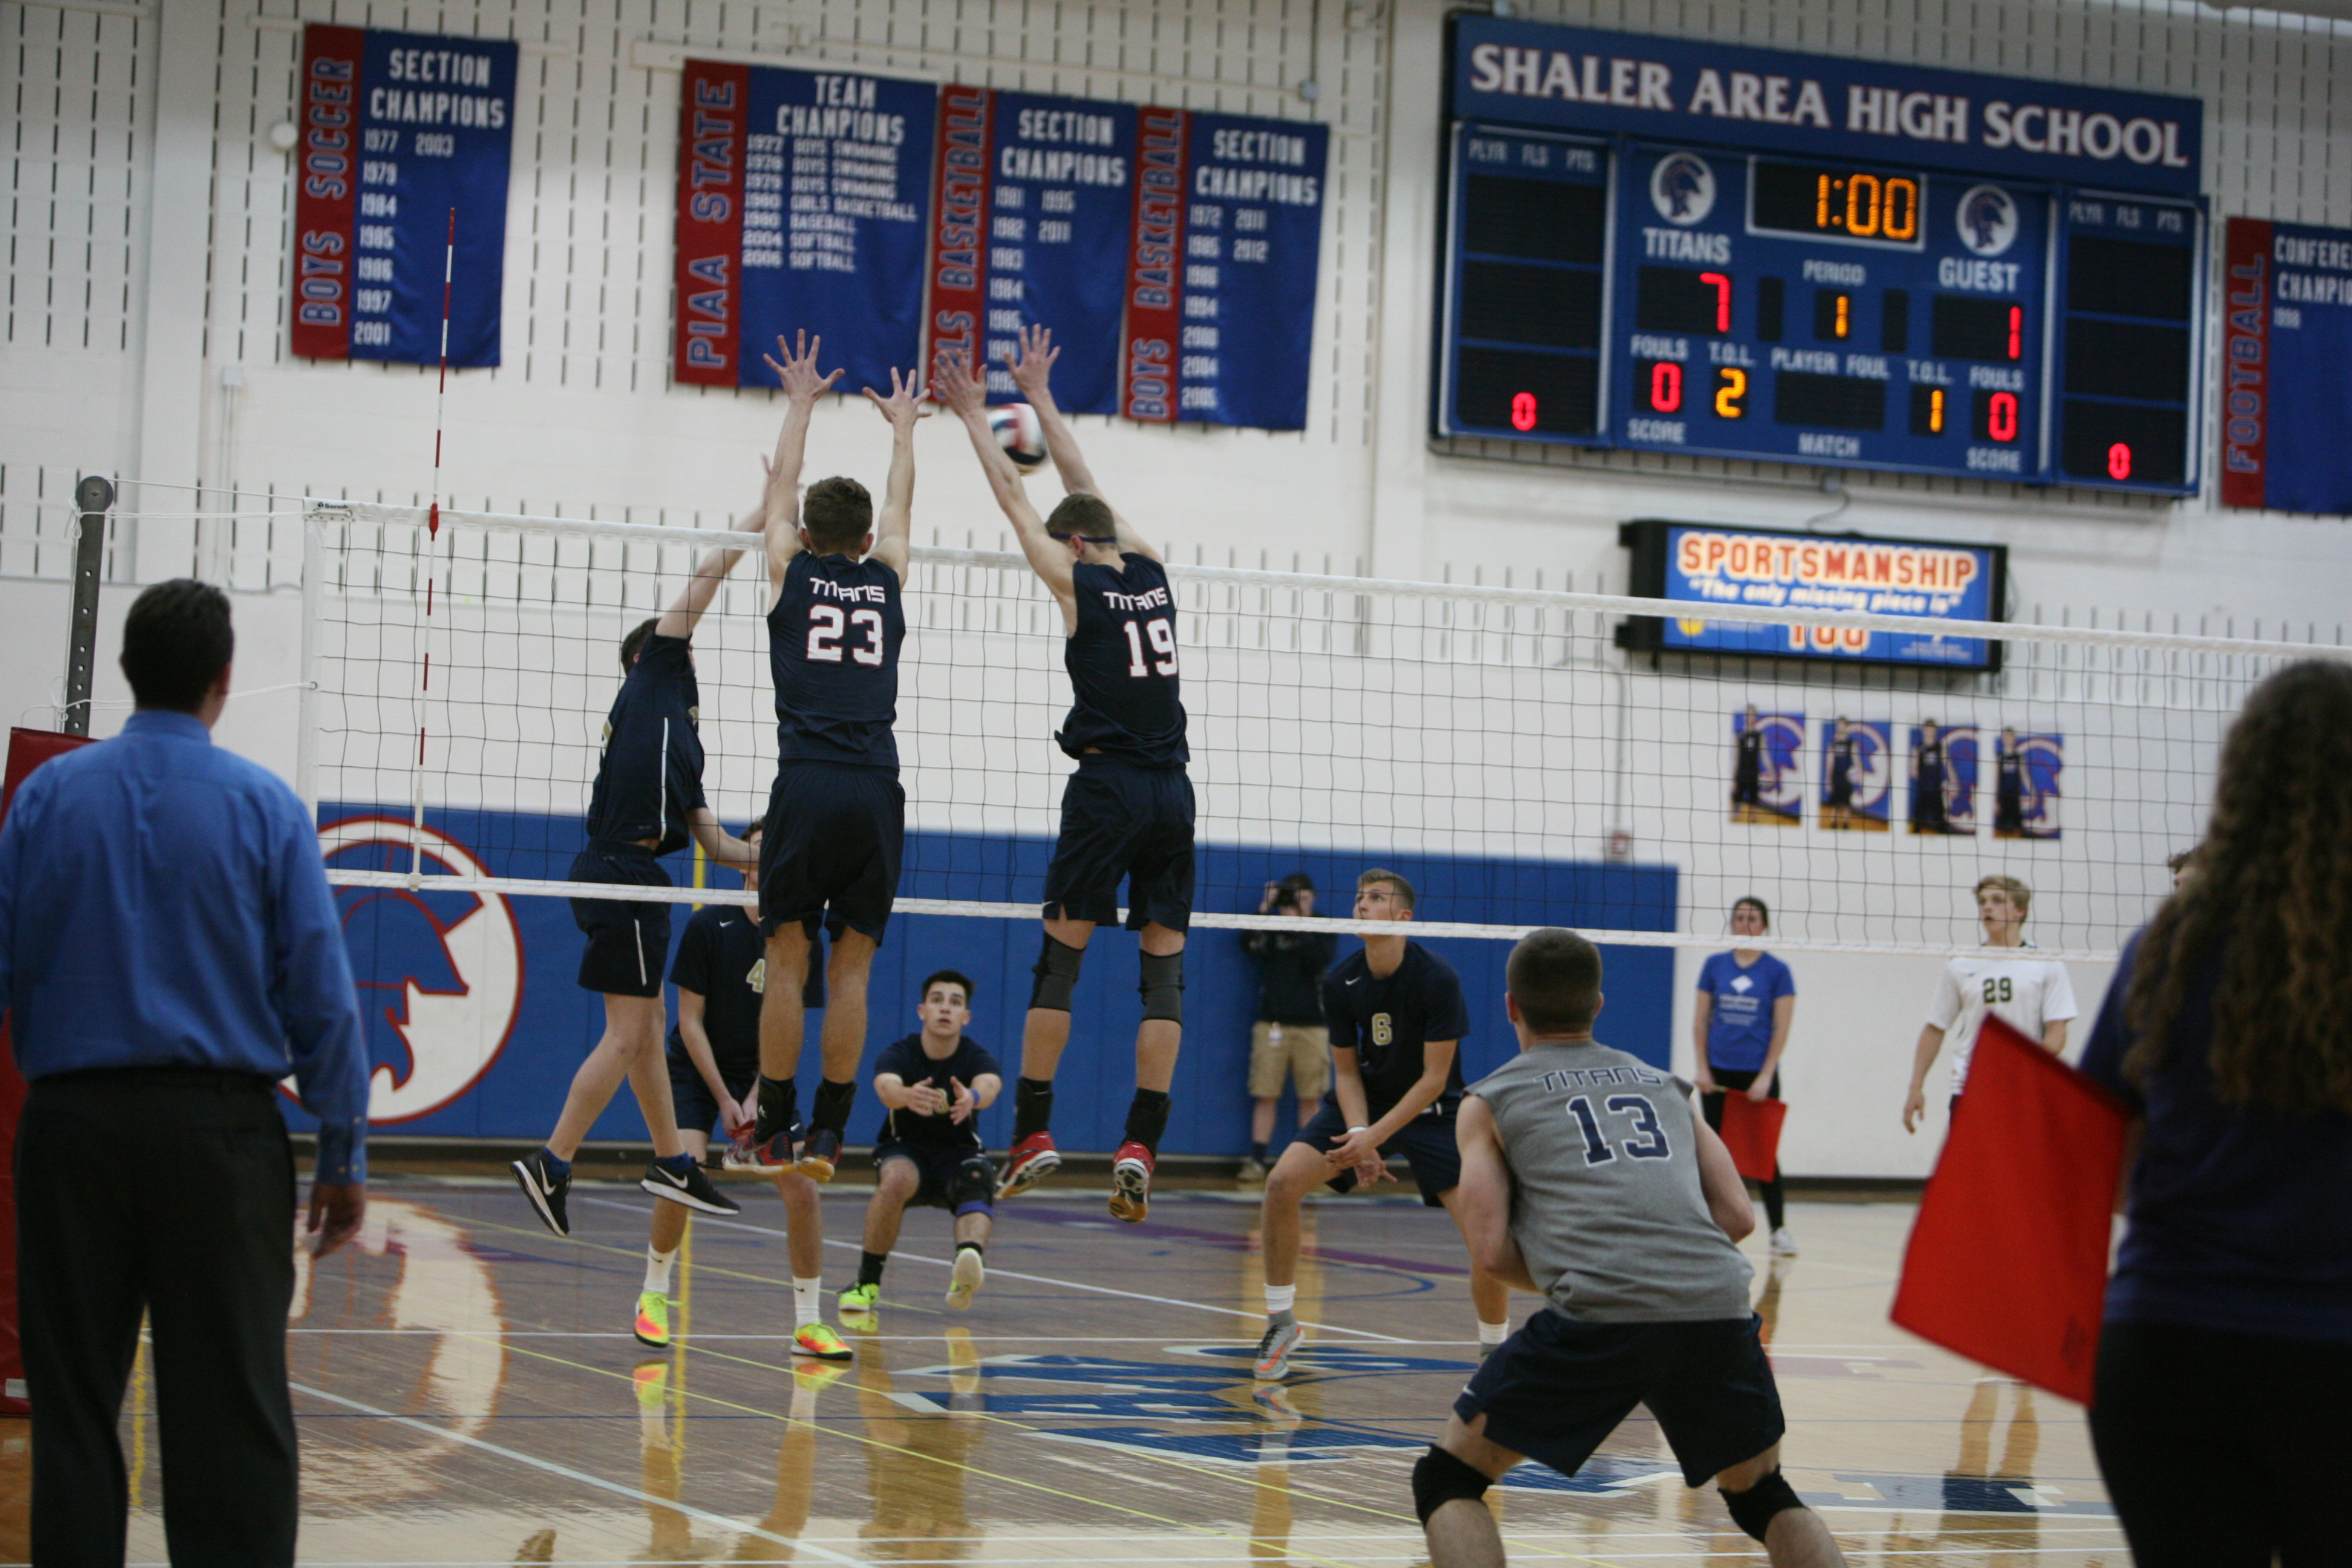 Communication key for Shaler boys volleyball team's young lineup